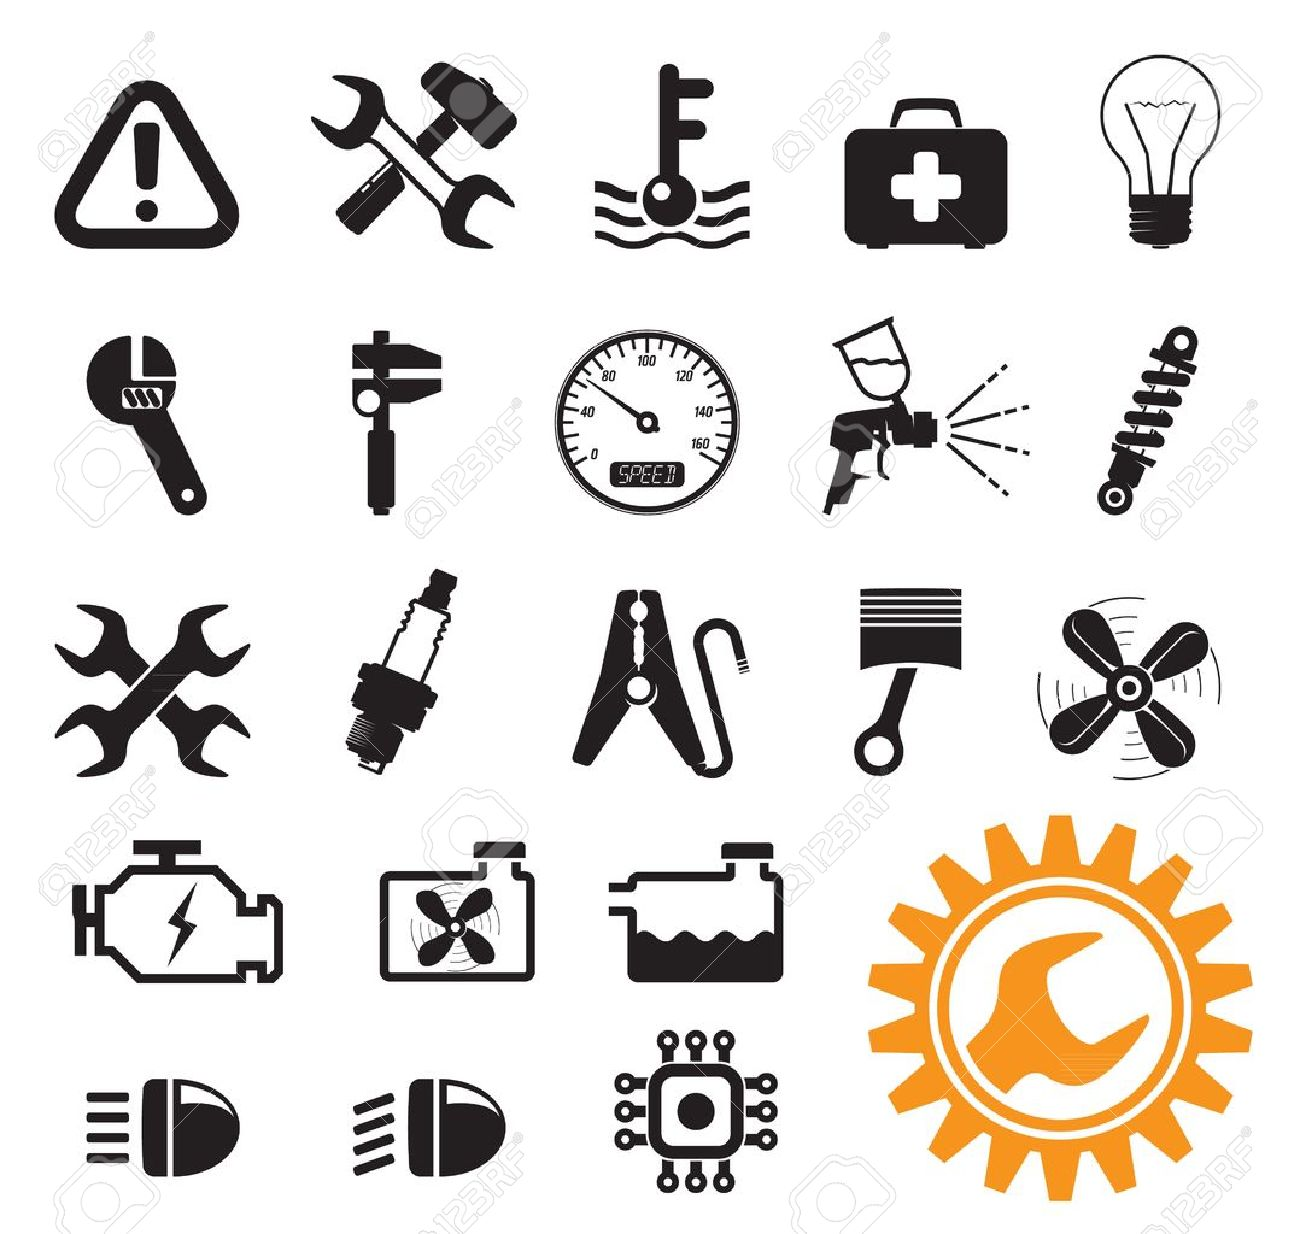 Car mechanic and service tools, icon set - 12493724